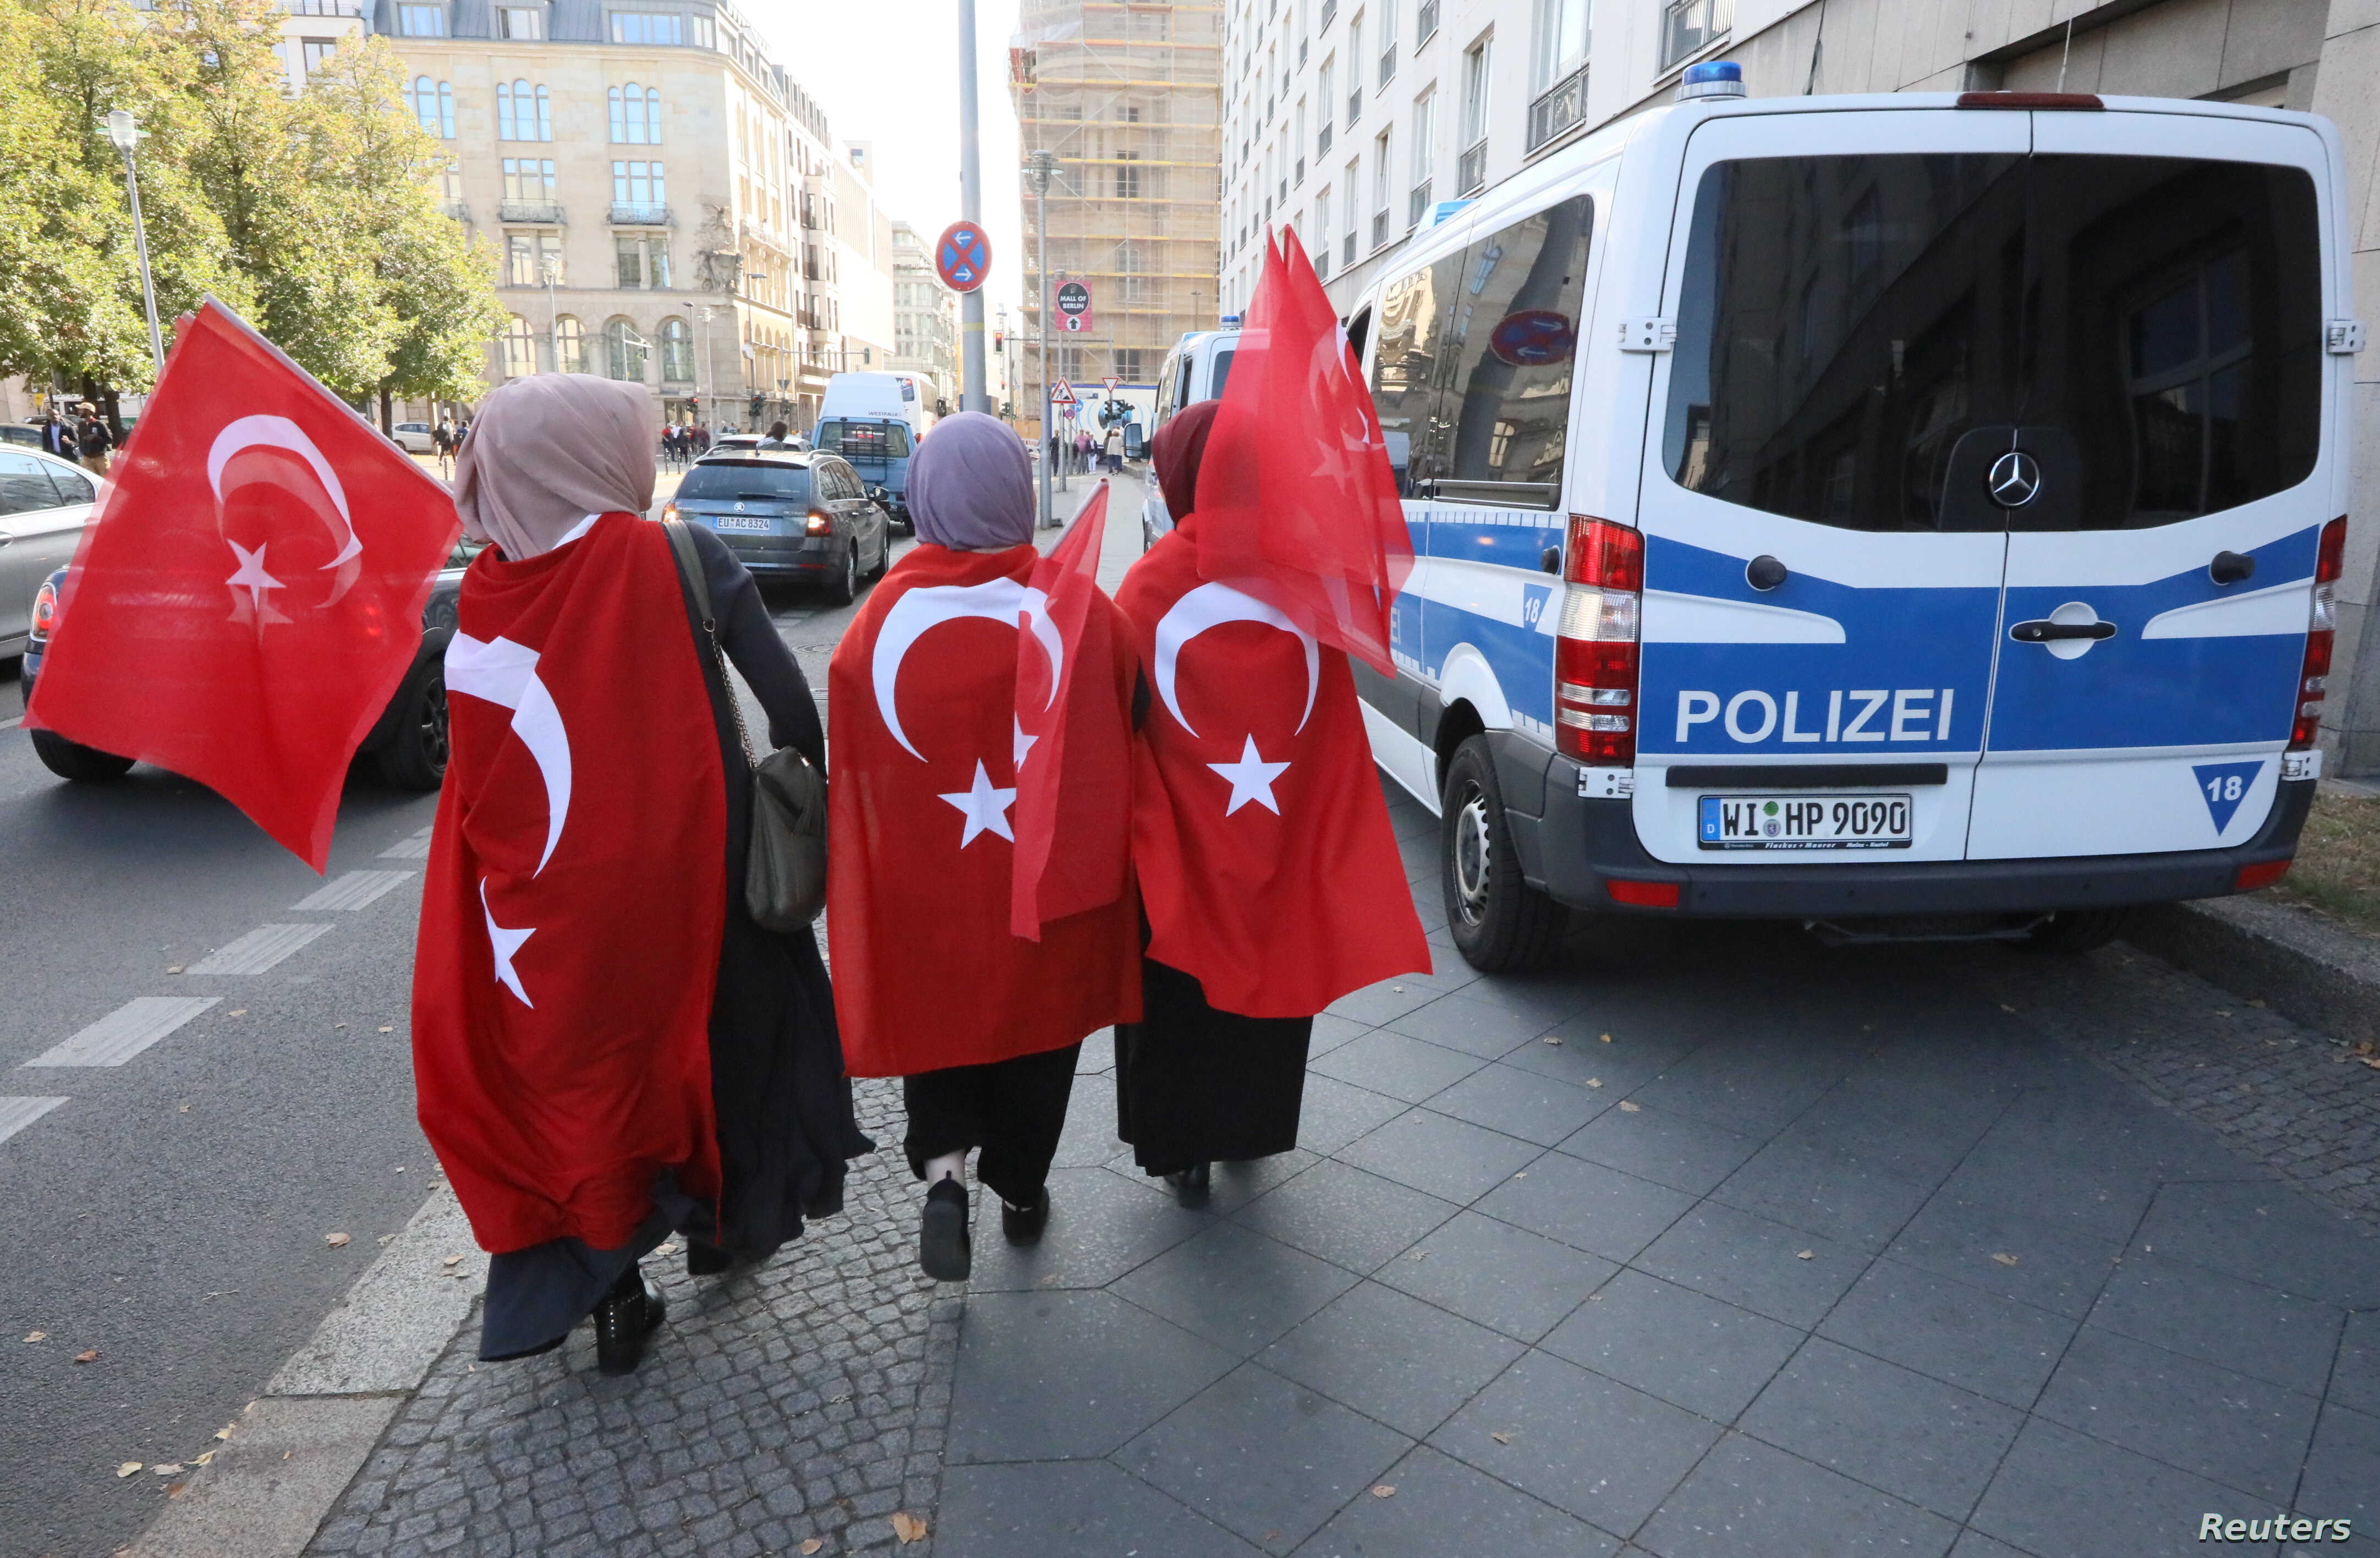 Supporters of Turkish President Recep Tayyip Erdogan walk along the security zone around the Adlon Hotel in Berlin, Sept. 27, 2018.